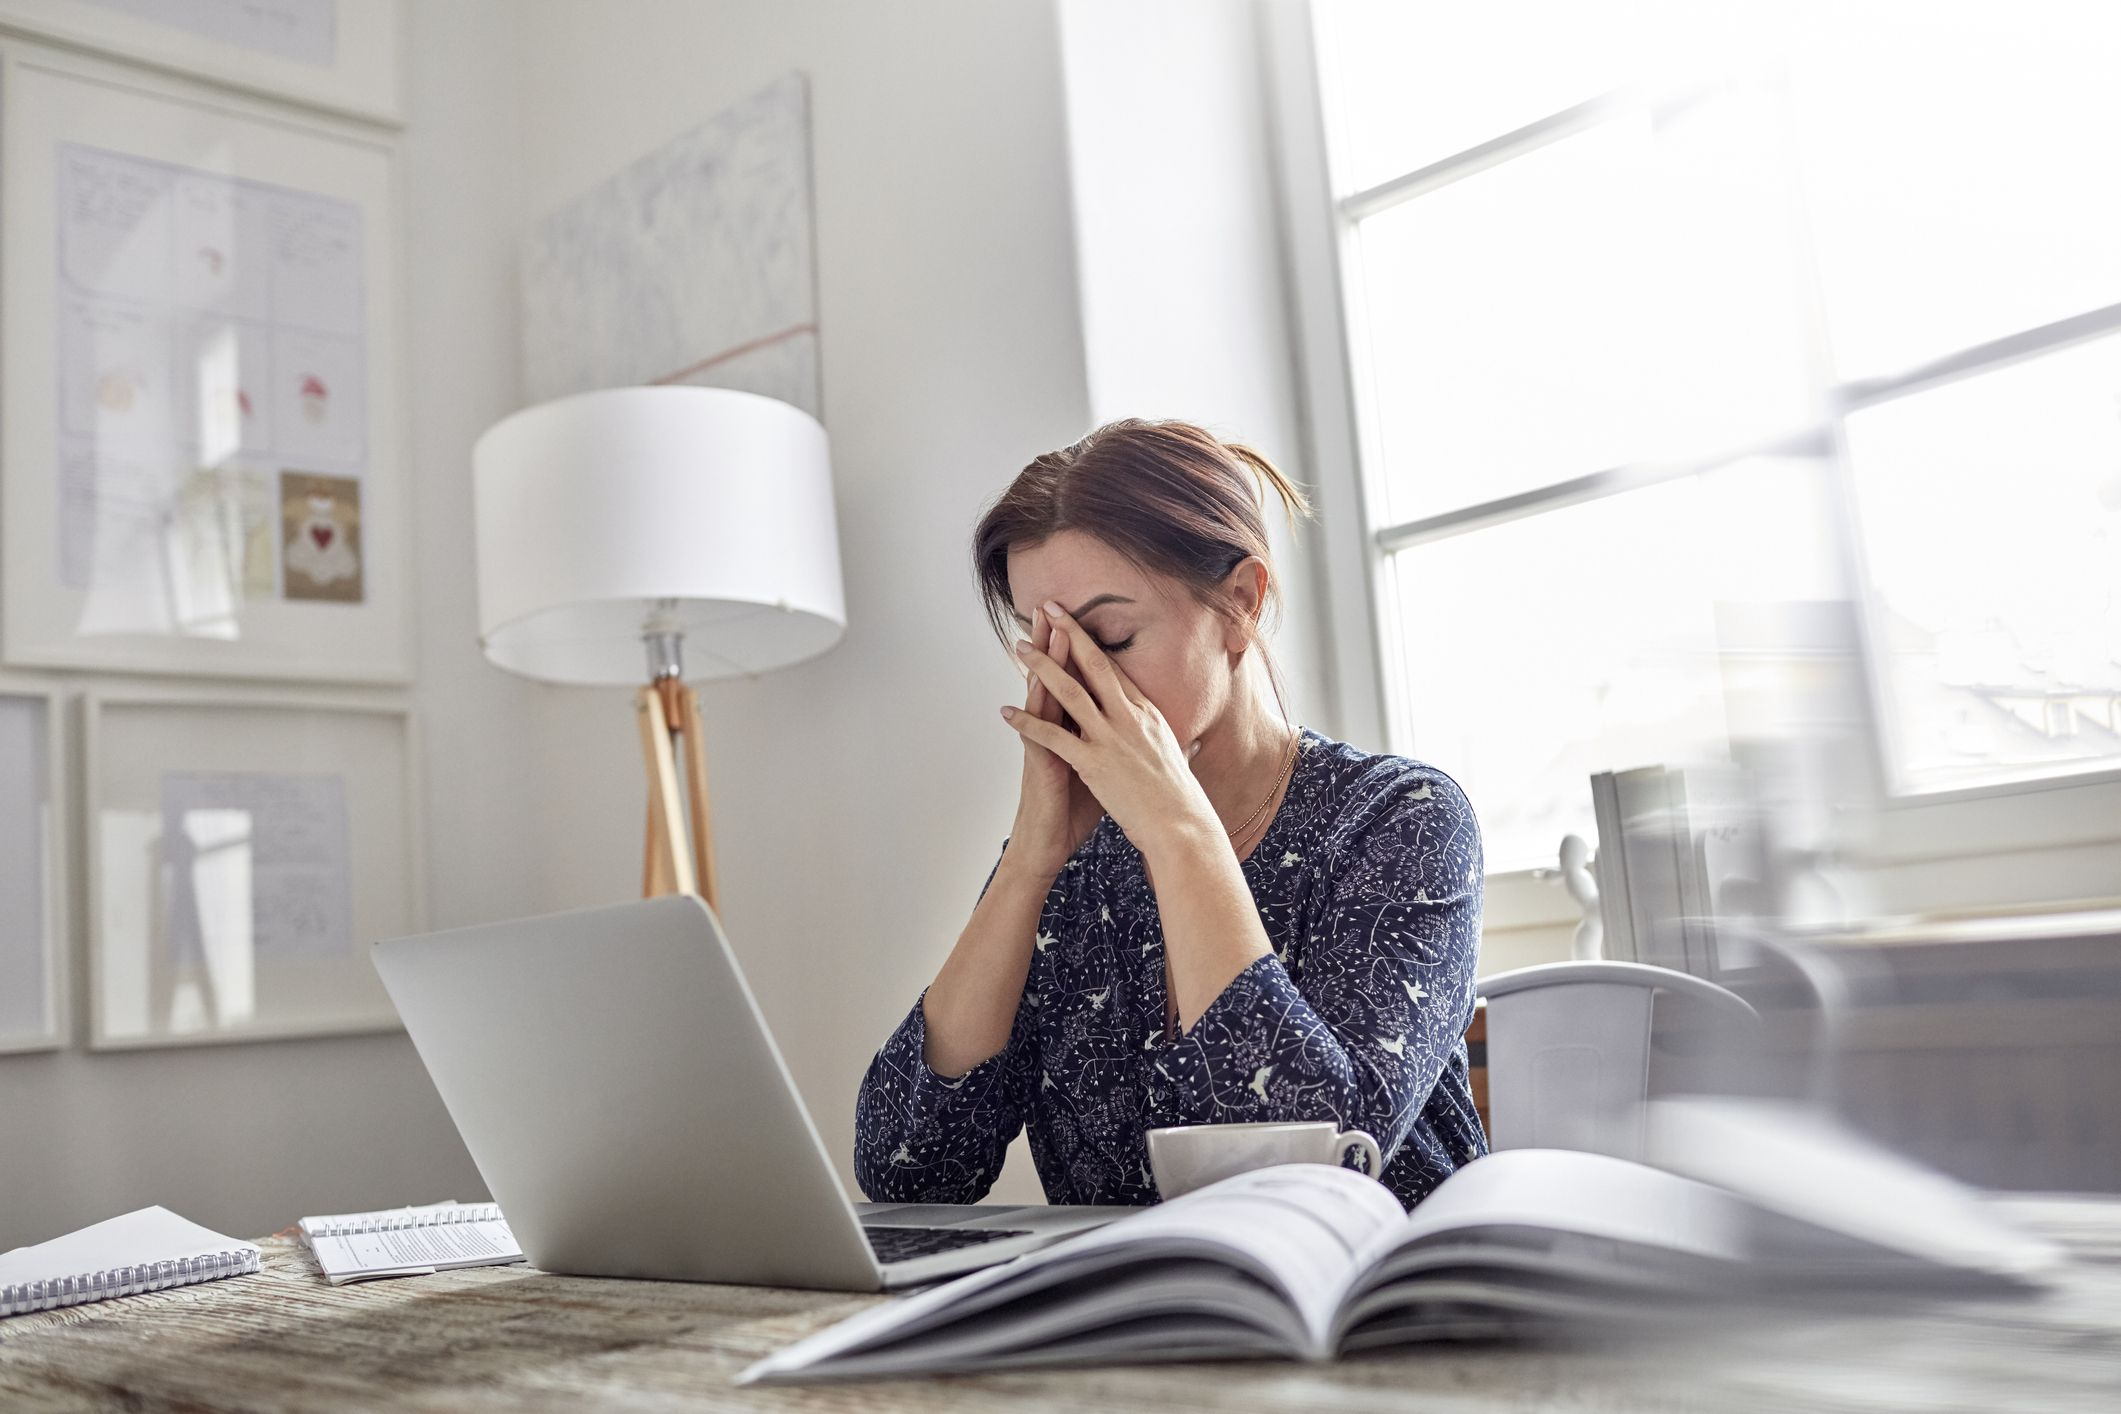 Stressed woman cradling face in hands while sitting behind computer.